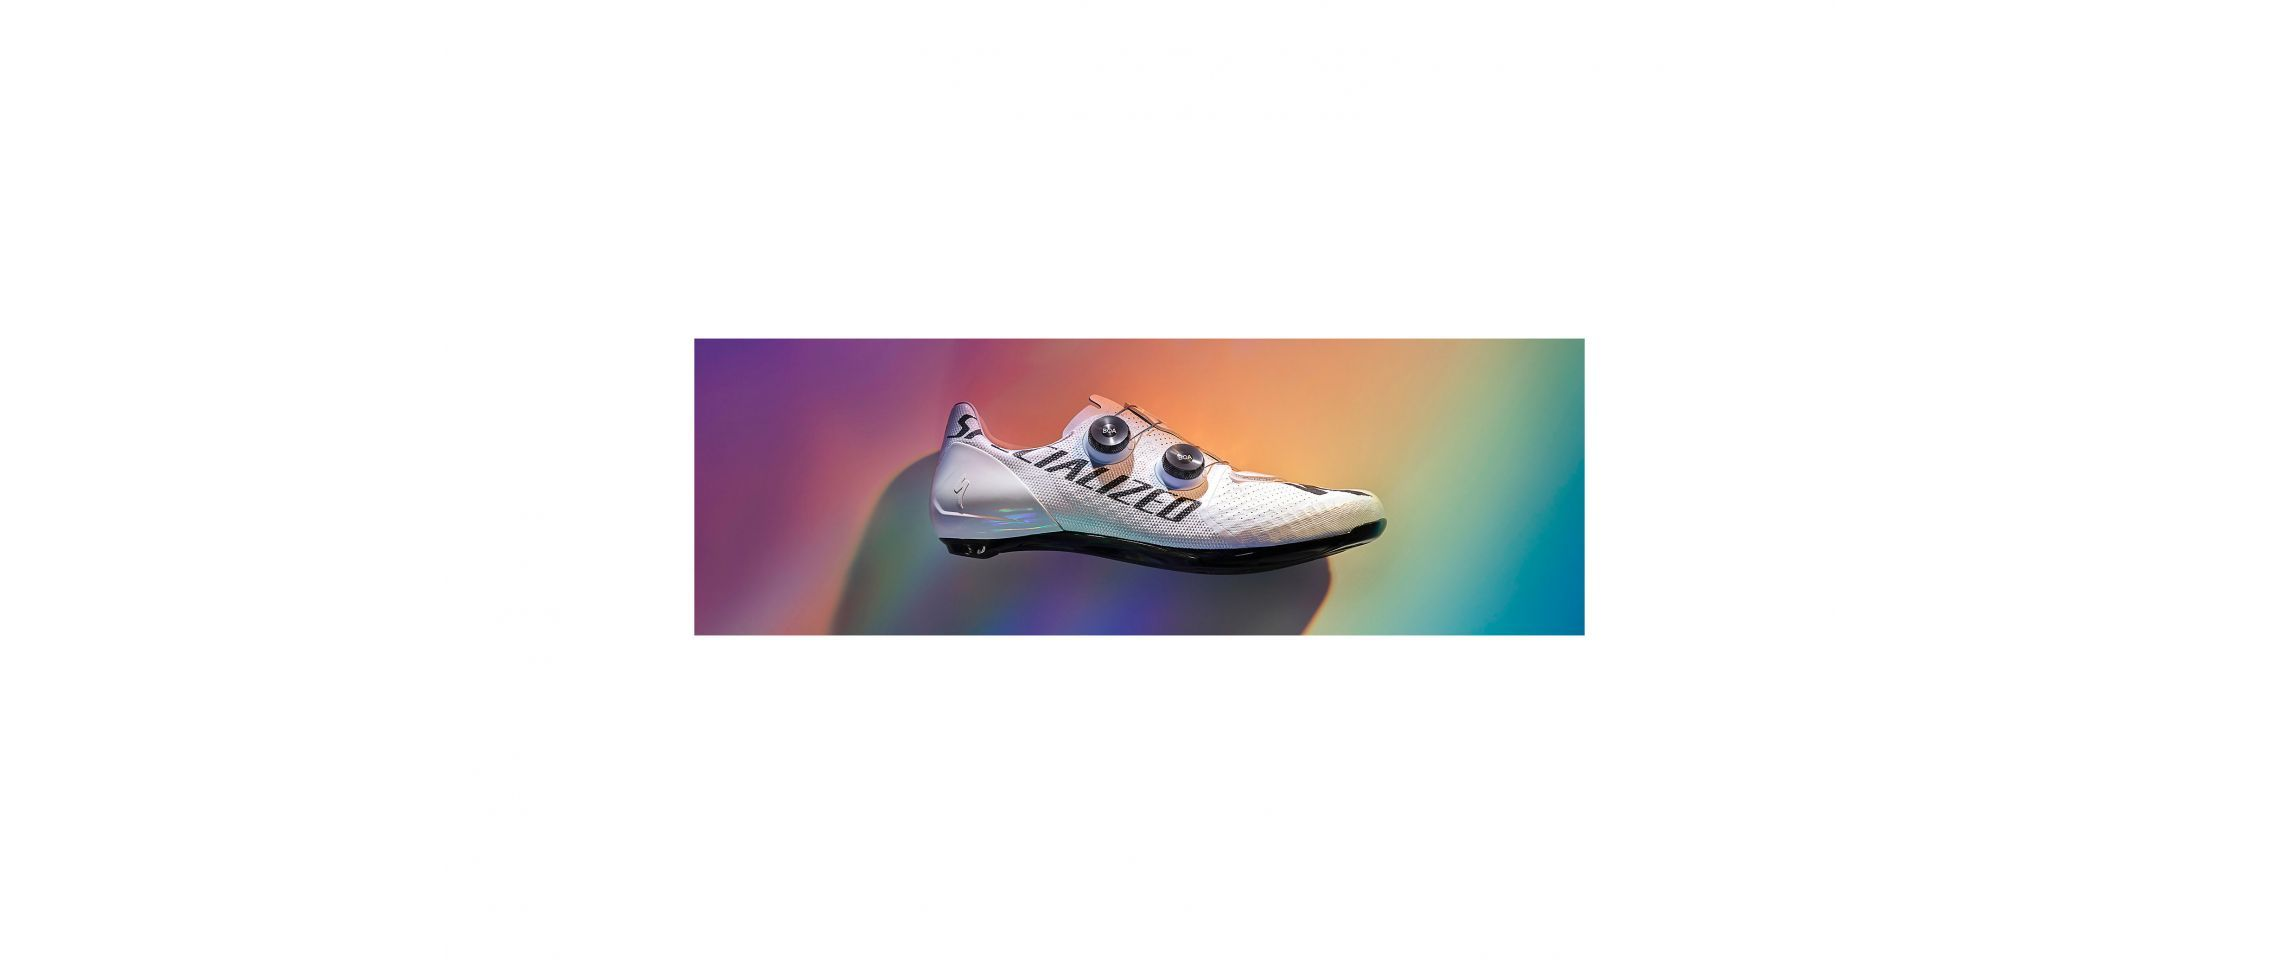 S-Works 7 Sagan Collection Zapatillas Carretera Specialized Overexposed 5 IBKBike.es